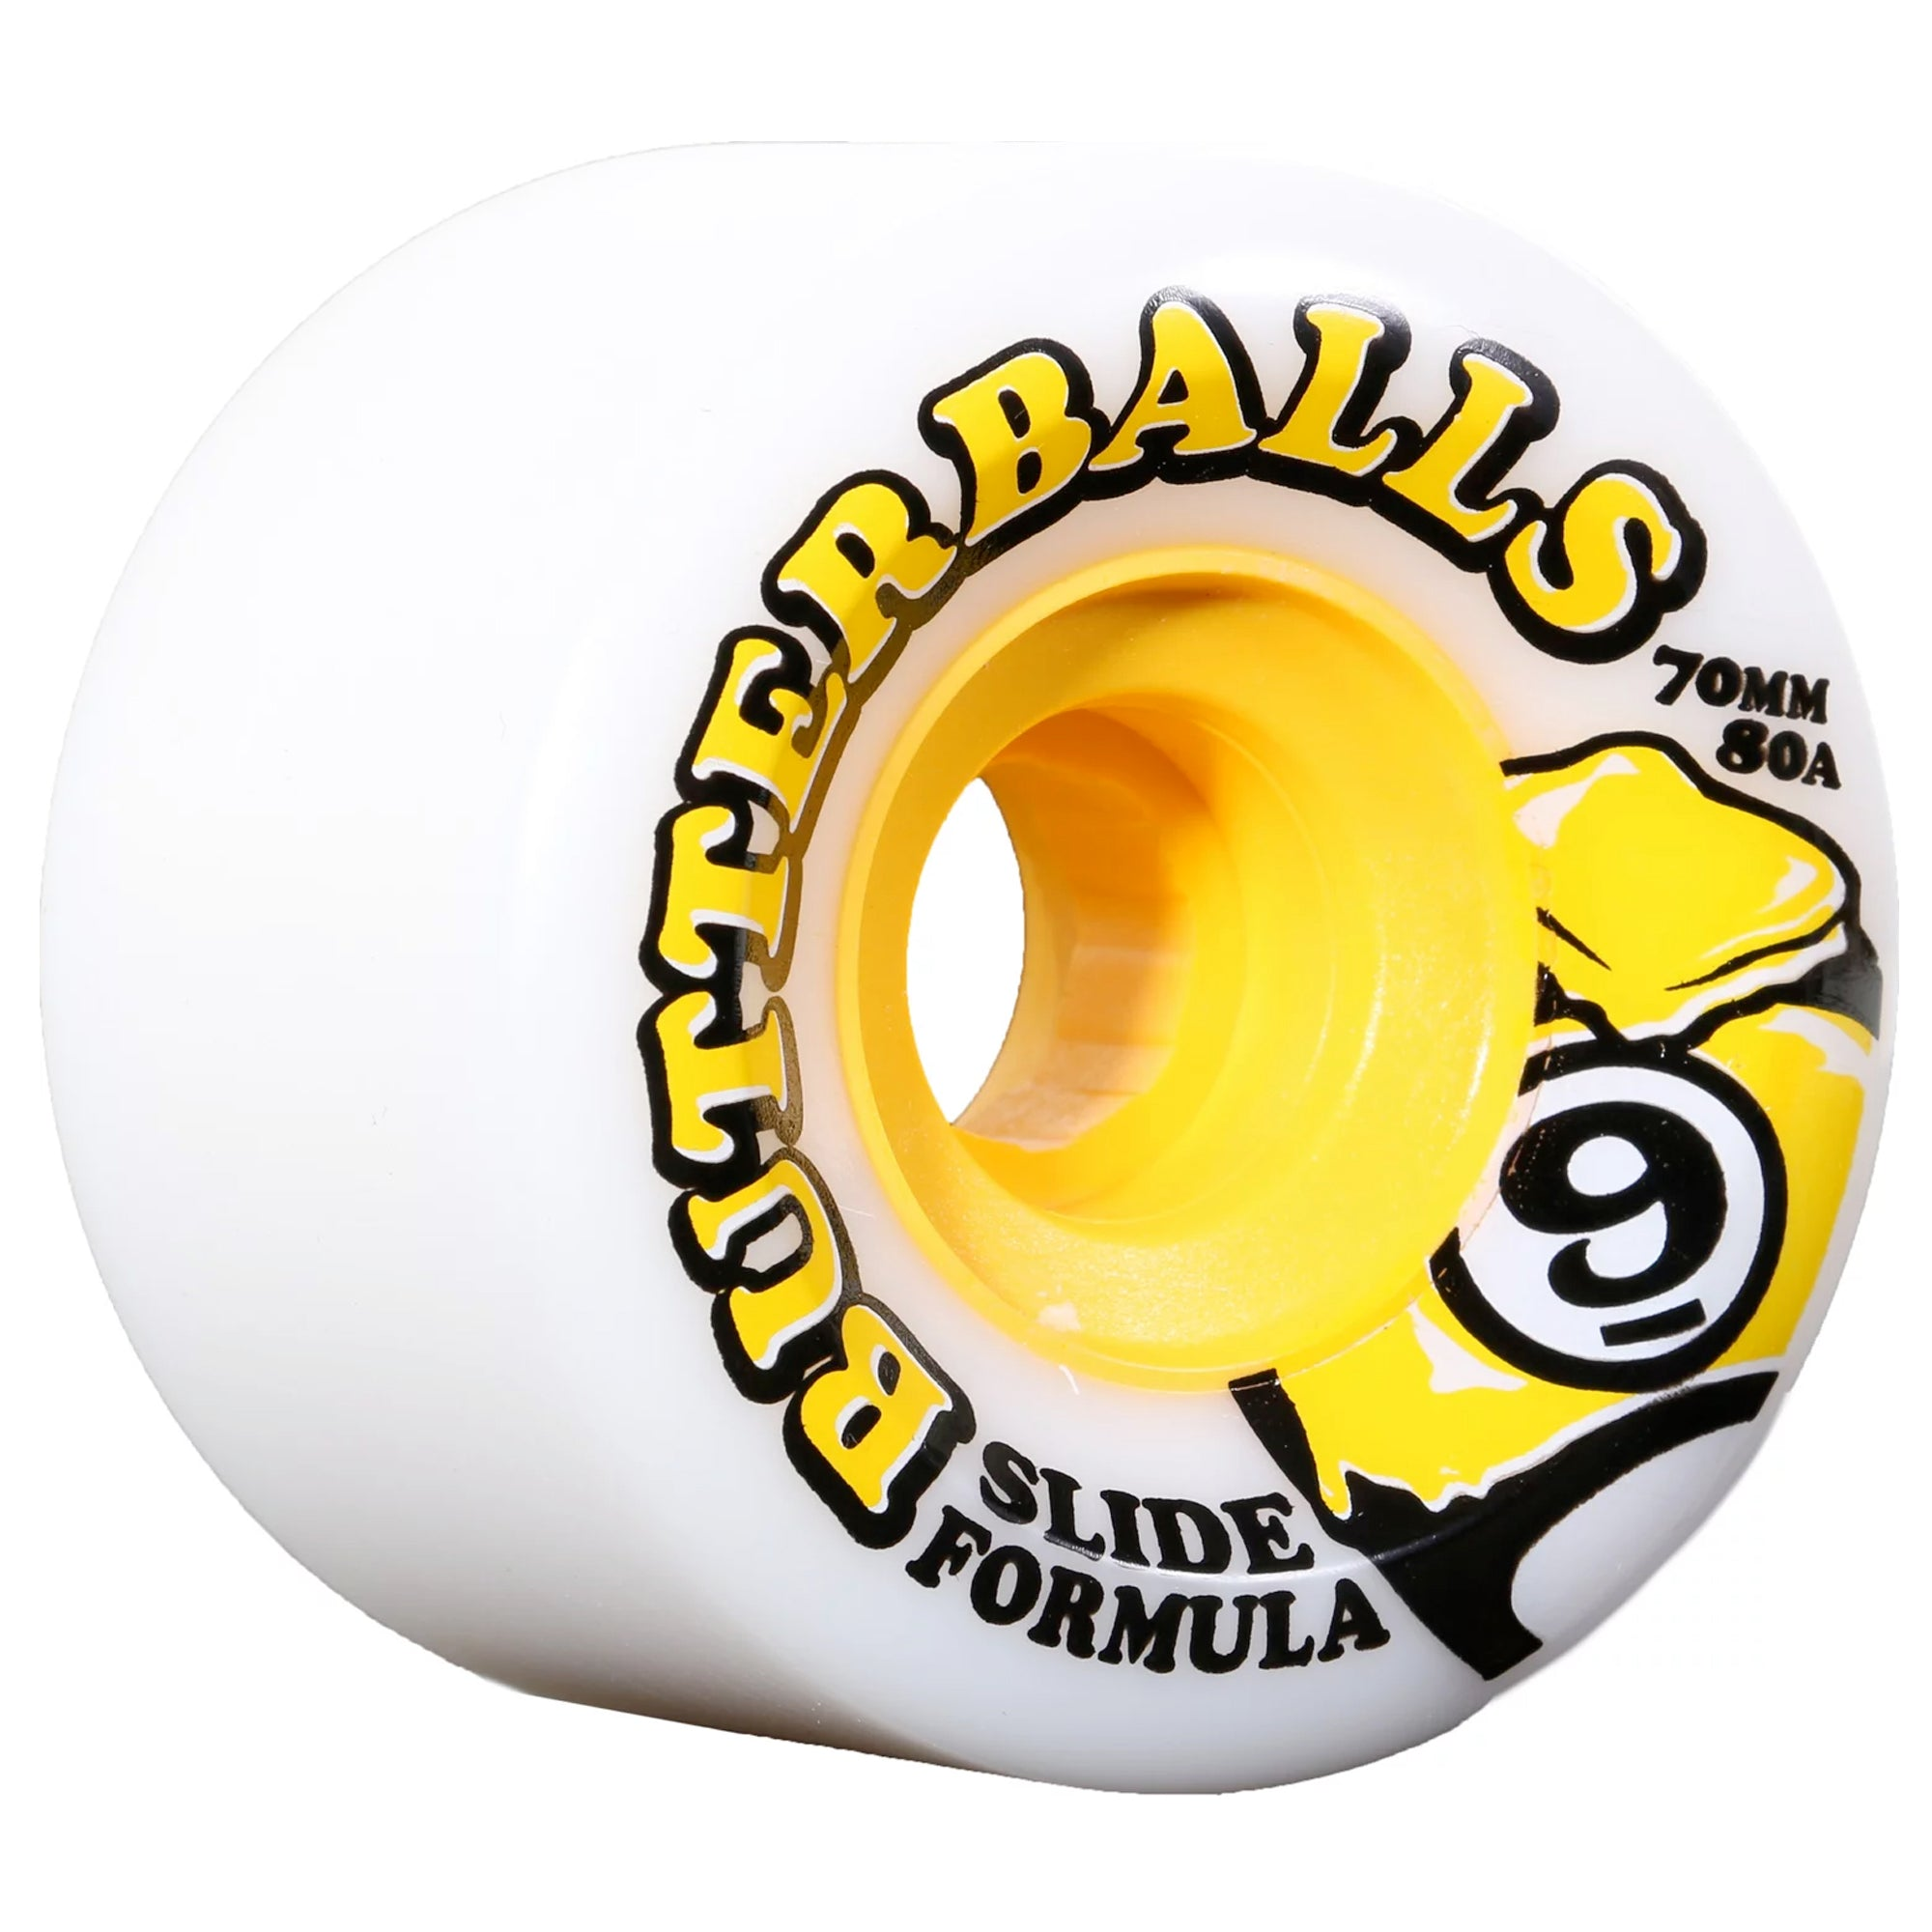 Sector 9 Butterballs 70mm 80a Wheels